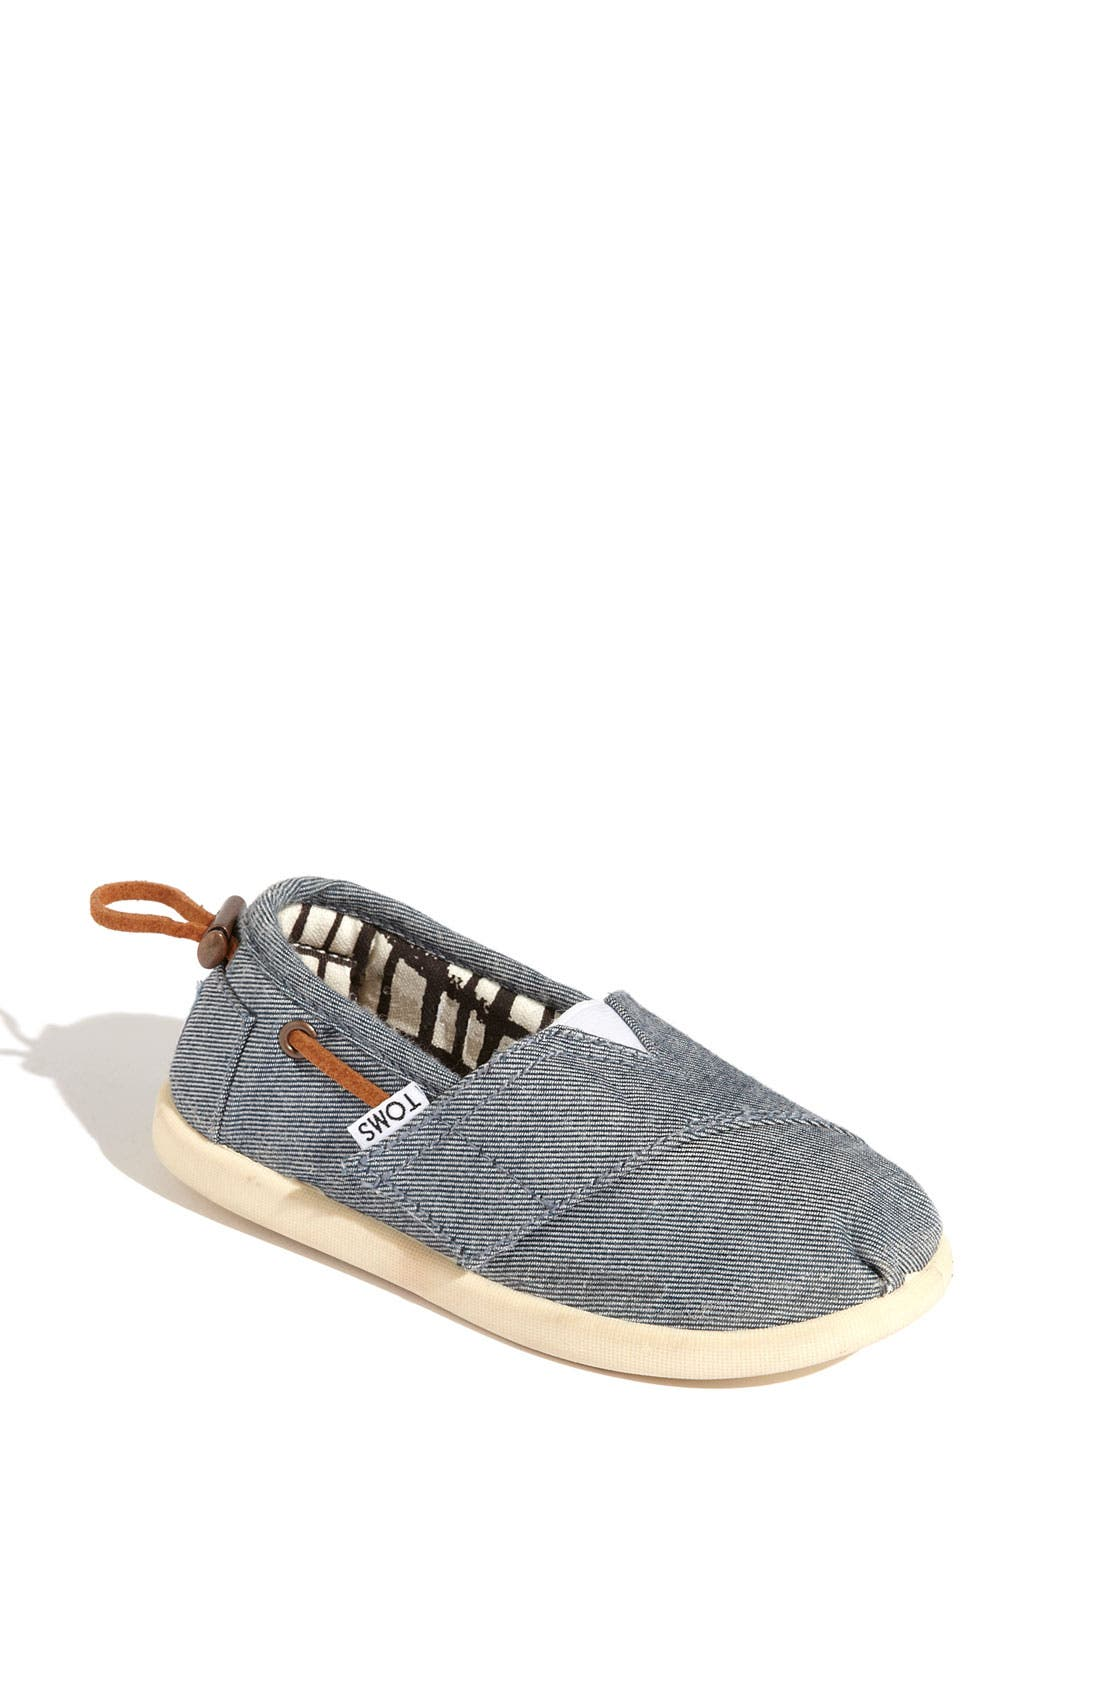 Alternate Image 1 Selected - TOMS 'Classic Tiny - Bimini' Chambray Slip-On (Baby, Walker & Toddler)